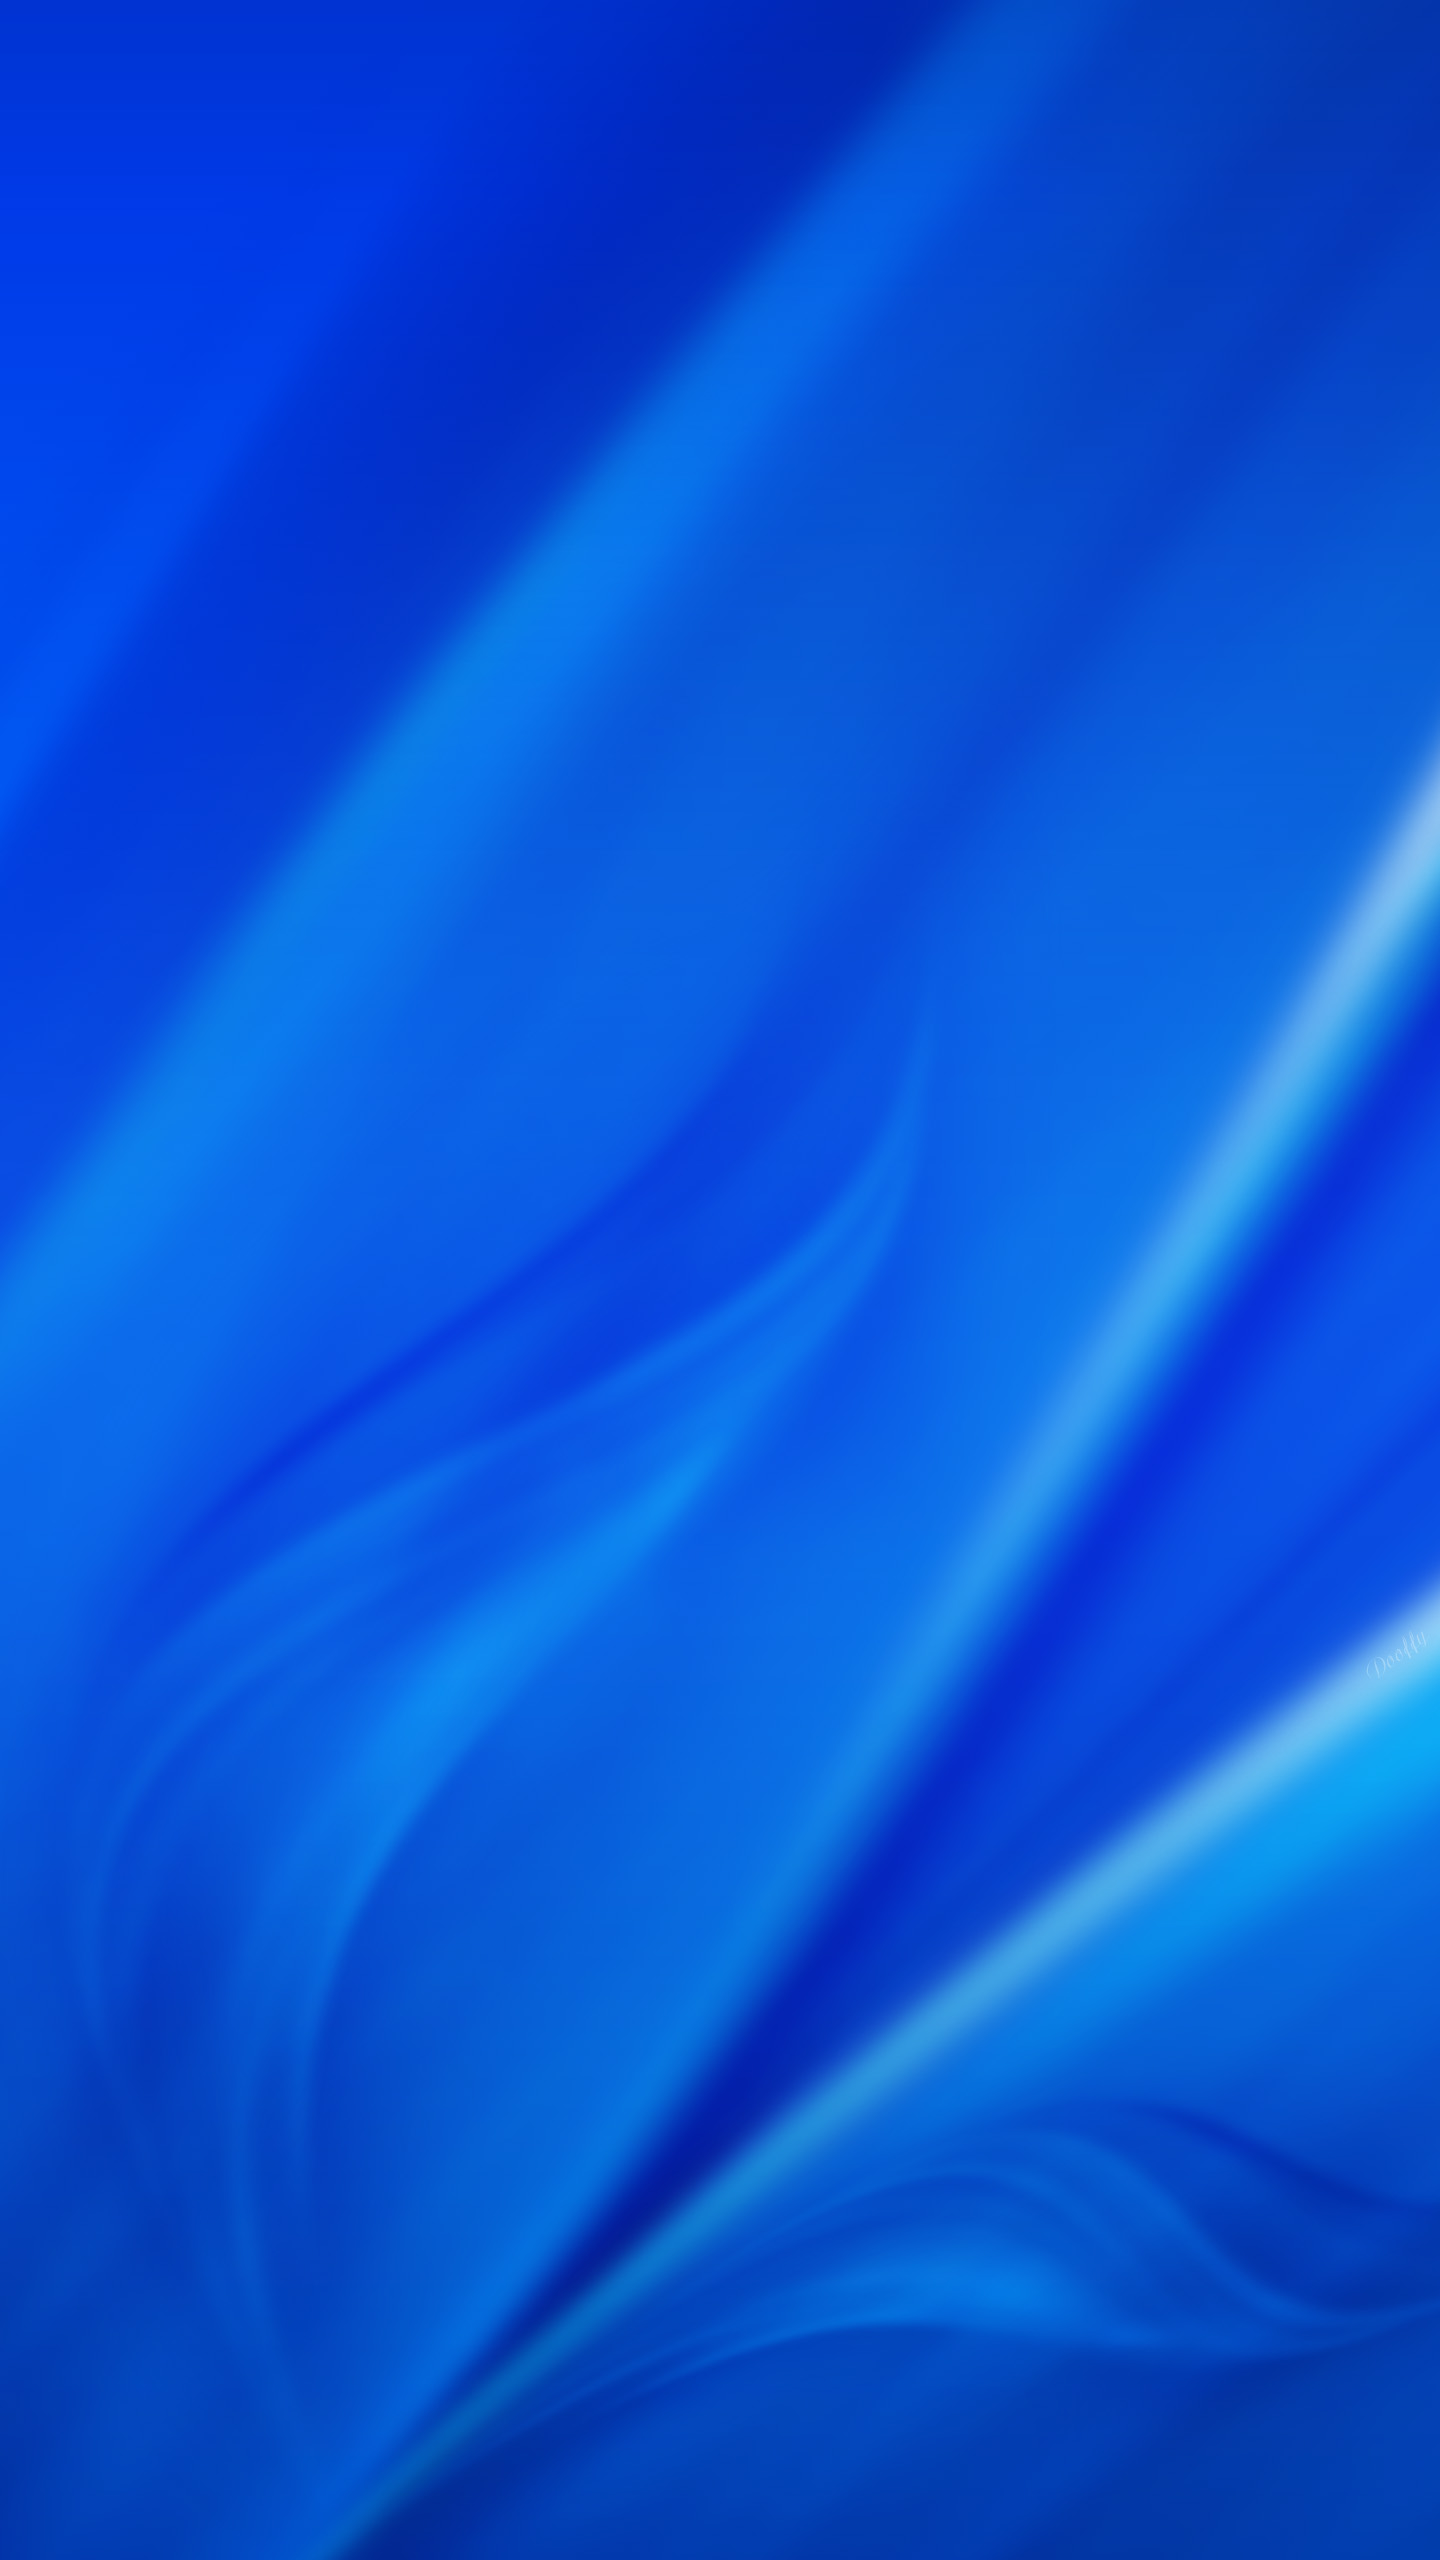 wallpaper samsung galaxy s6 - blue (by dooffy)dooffy-design on